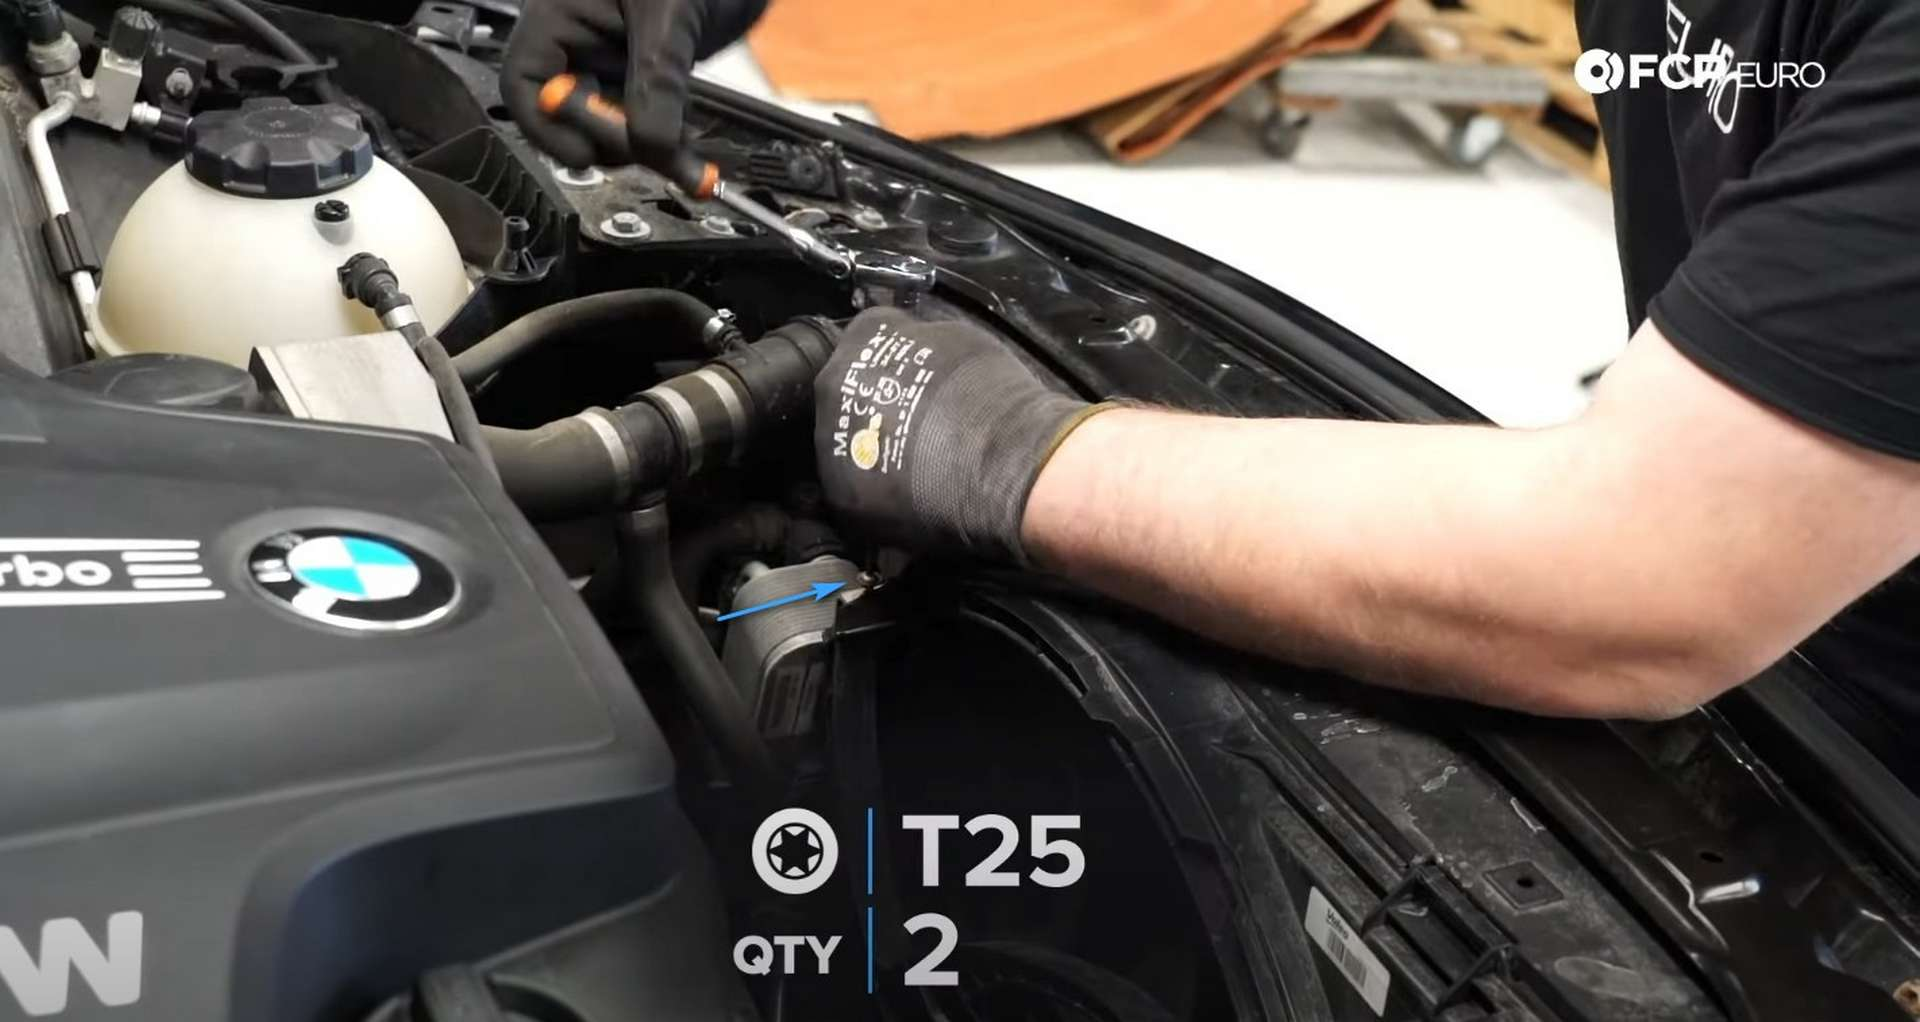 DIY BMW F30 Oil Filter Housing Gasket Replacement loosening the negative battery cable connection